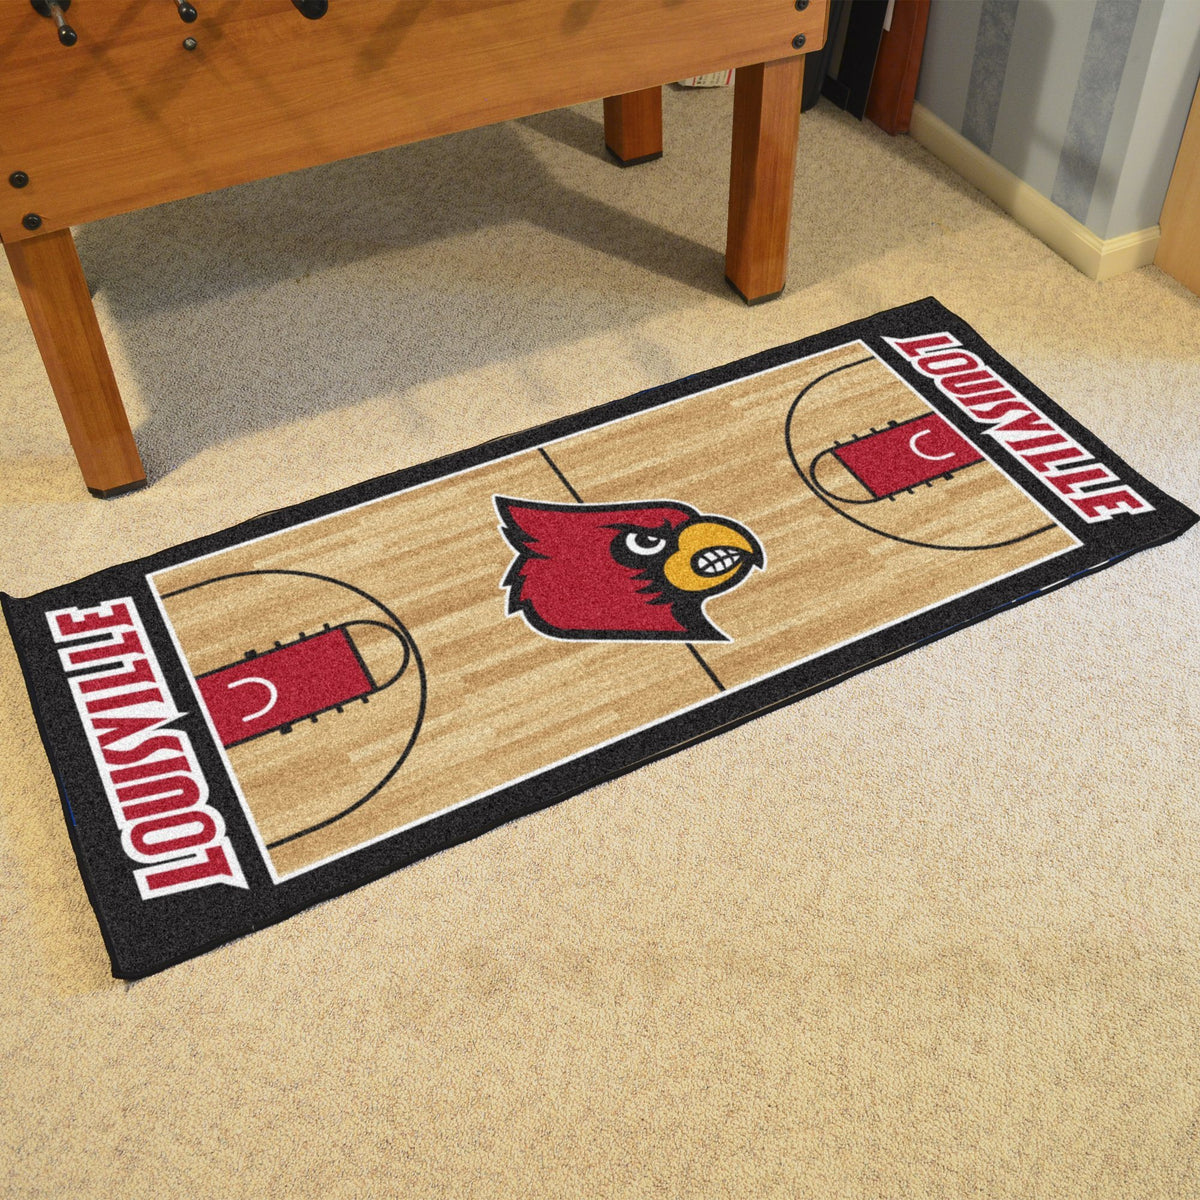 Collegiate - NCAA Basketball Runner Collegiate Mats, Rectangular Mats, NCAA Basketball Runner, Collegiate, Home Fan Mats Louisville